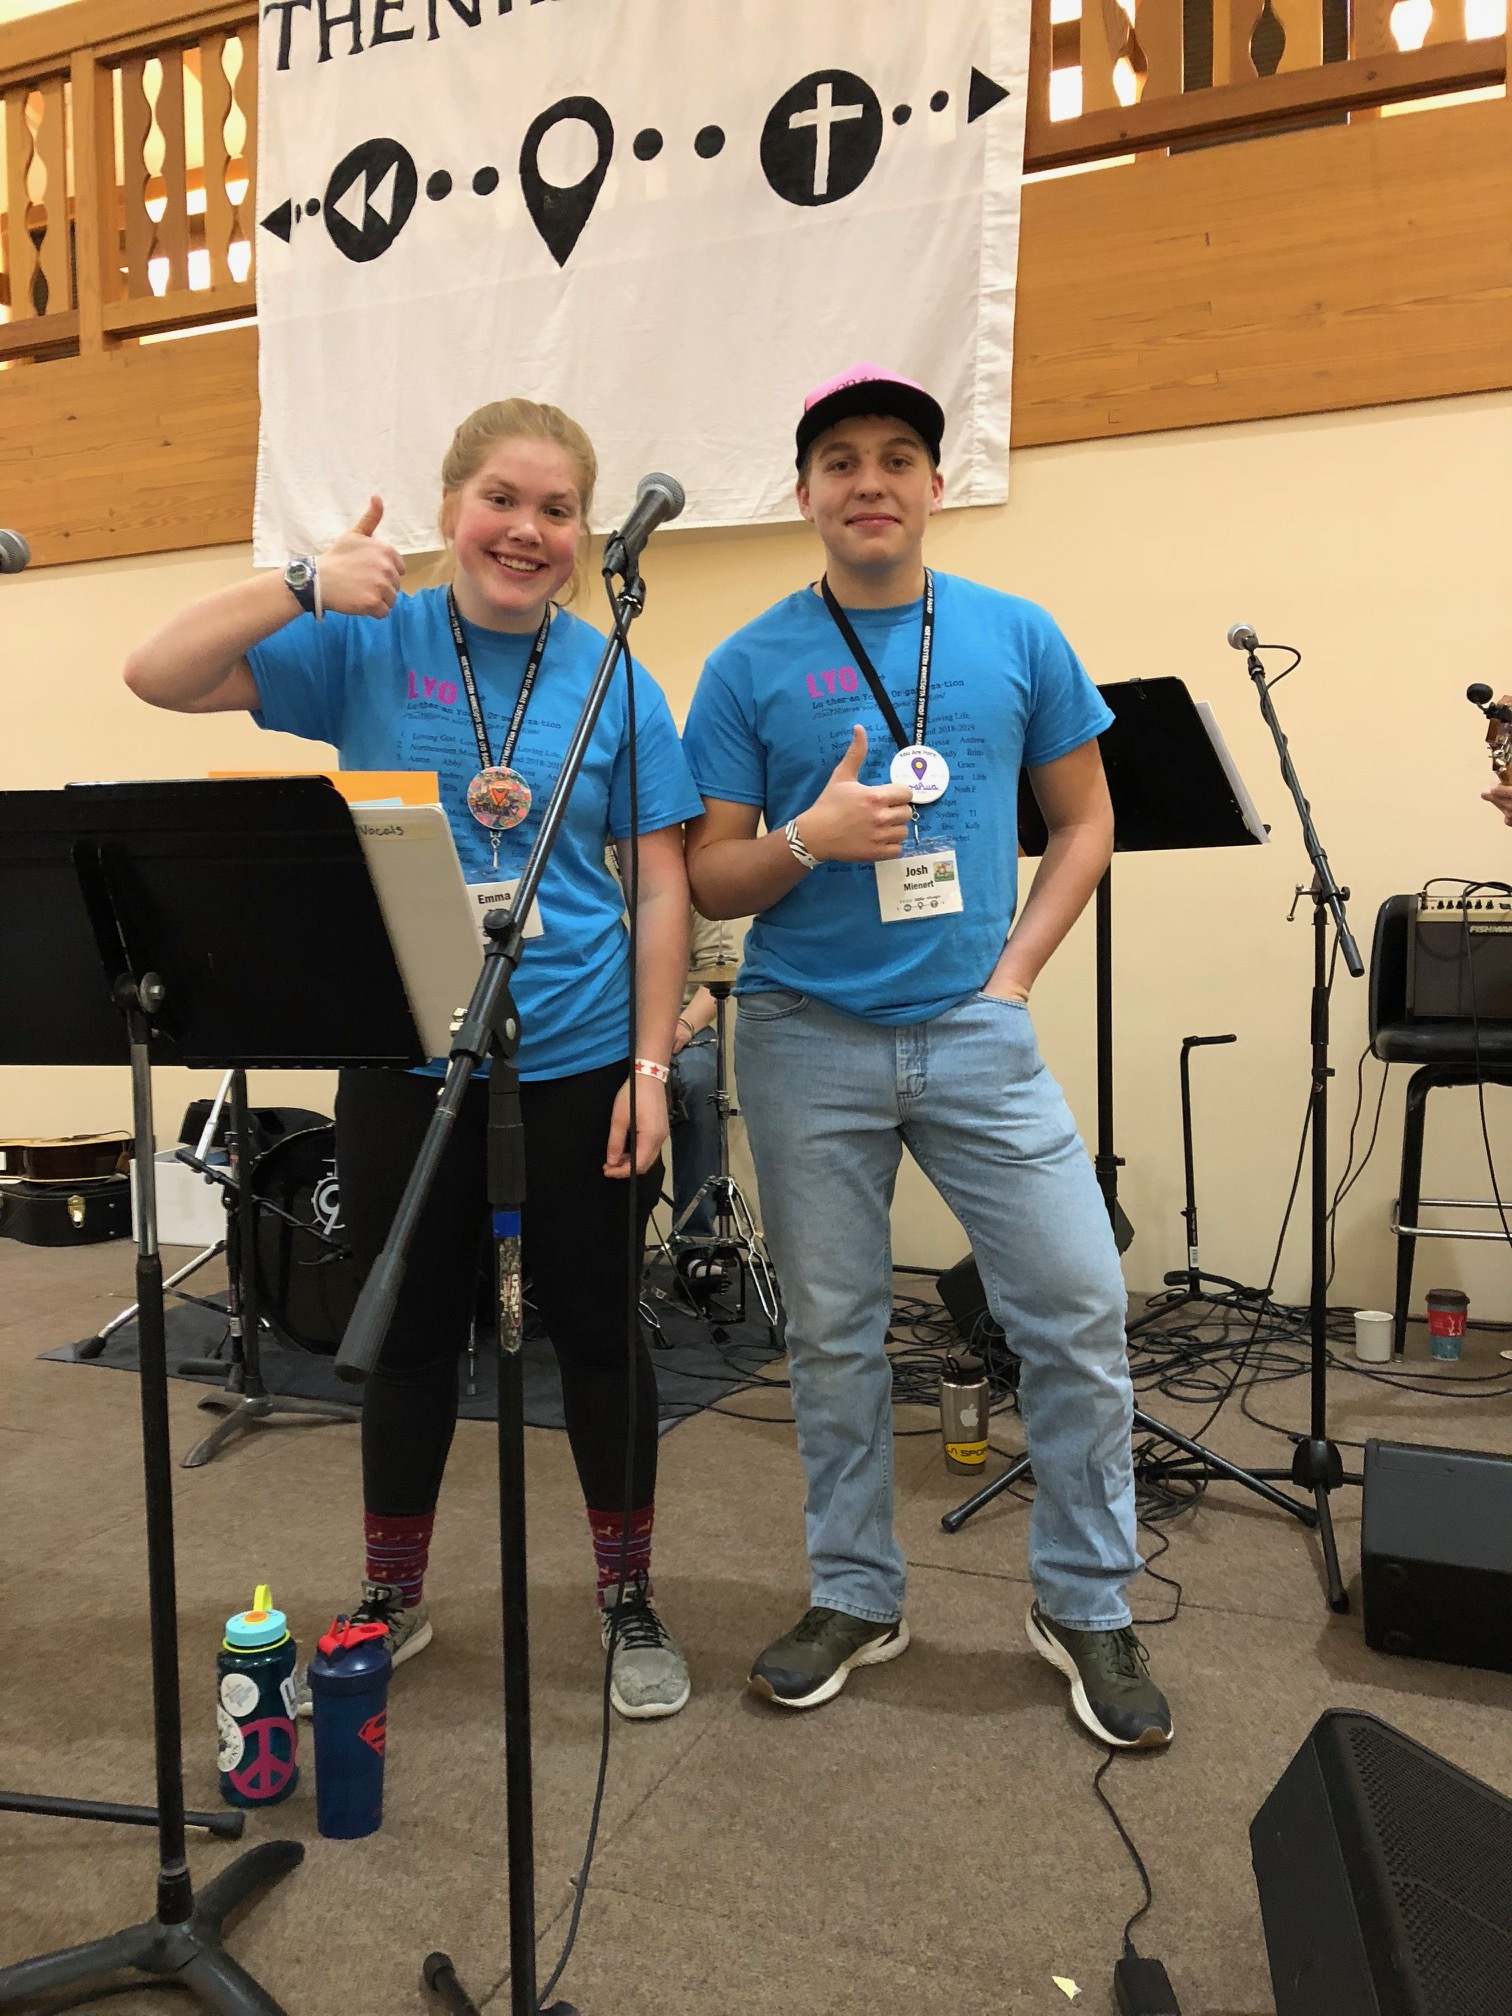 Emma and Josh are members of the LYO (Lutheran Youth Organization) Board and help lead worship.